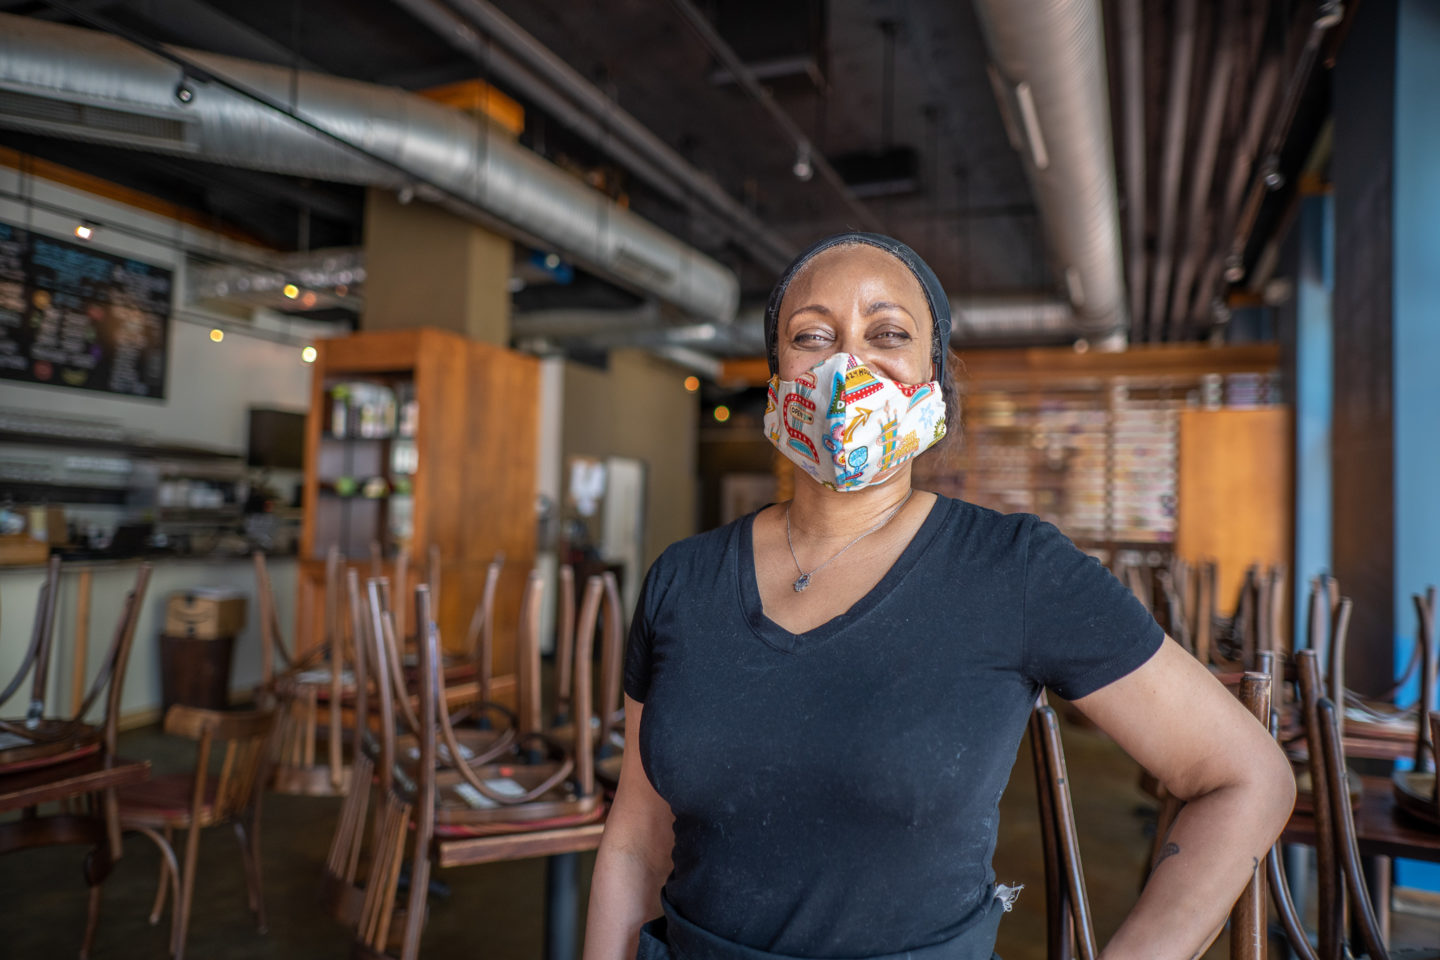 Image of woman wearing mask, working in a restaurant.